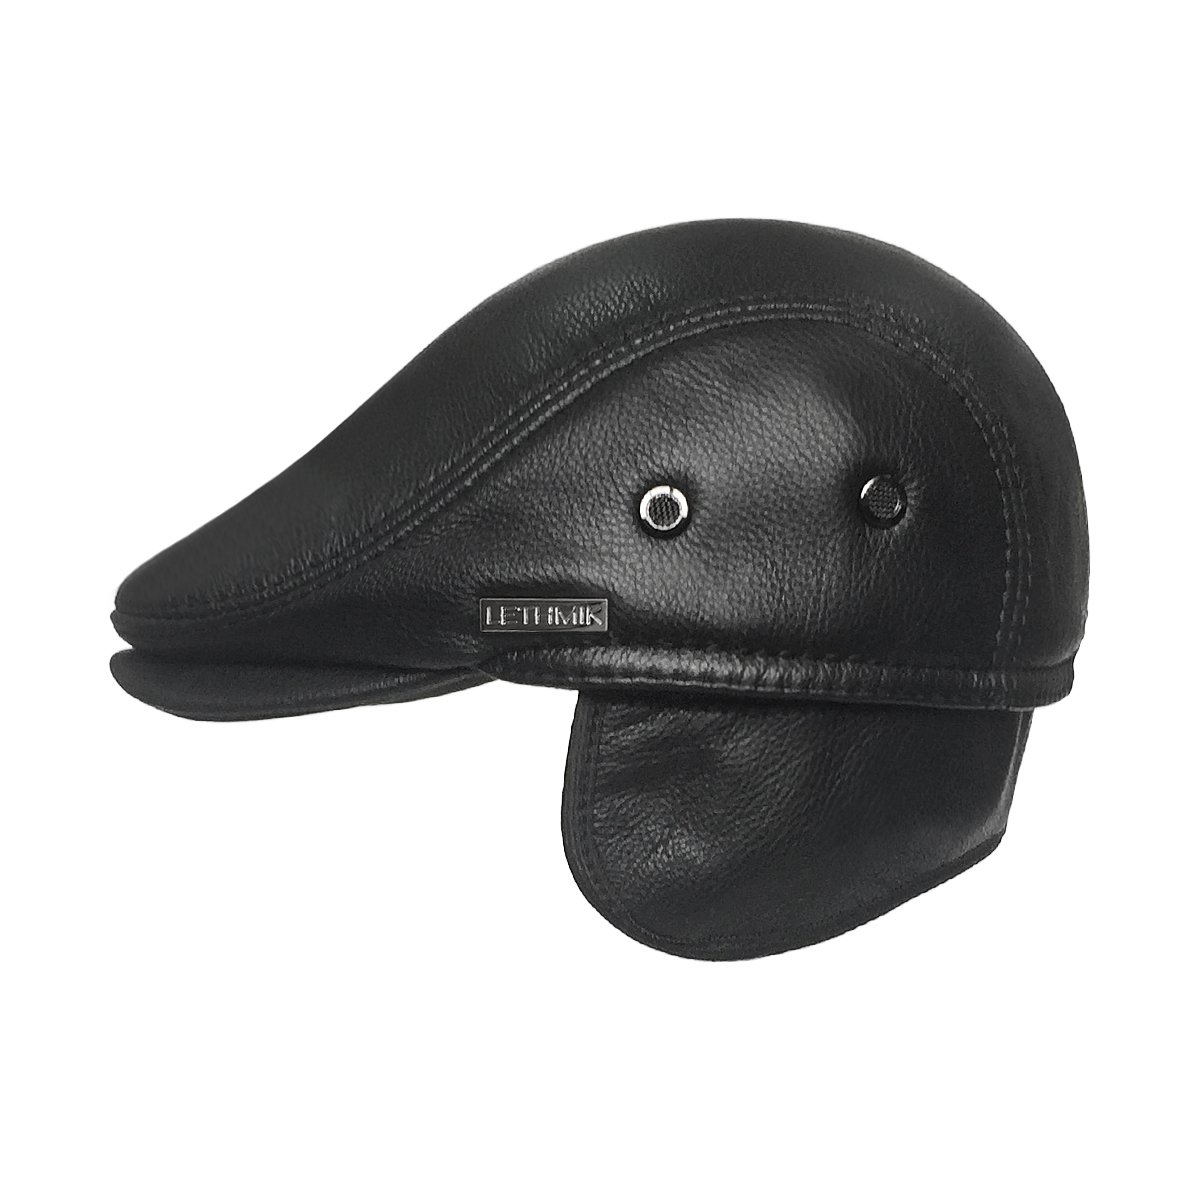 Amazon.com  LETHMIK Flat Cap Cabby Hat Genuine Leather Vintage Newsboy Cap  Ivy Driving Cap  Sports   Outdoors 8611daffb1be